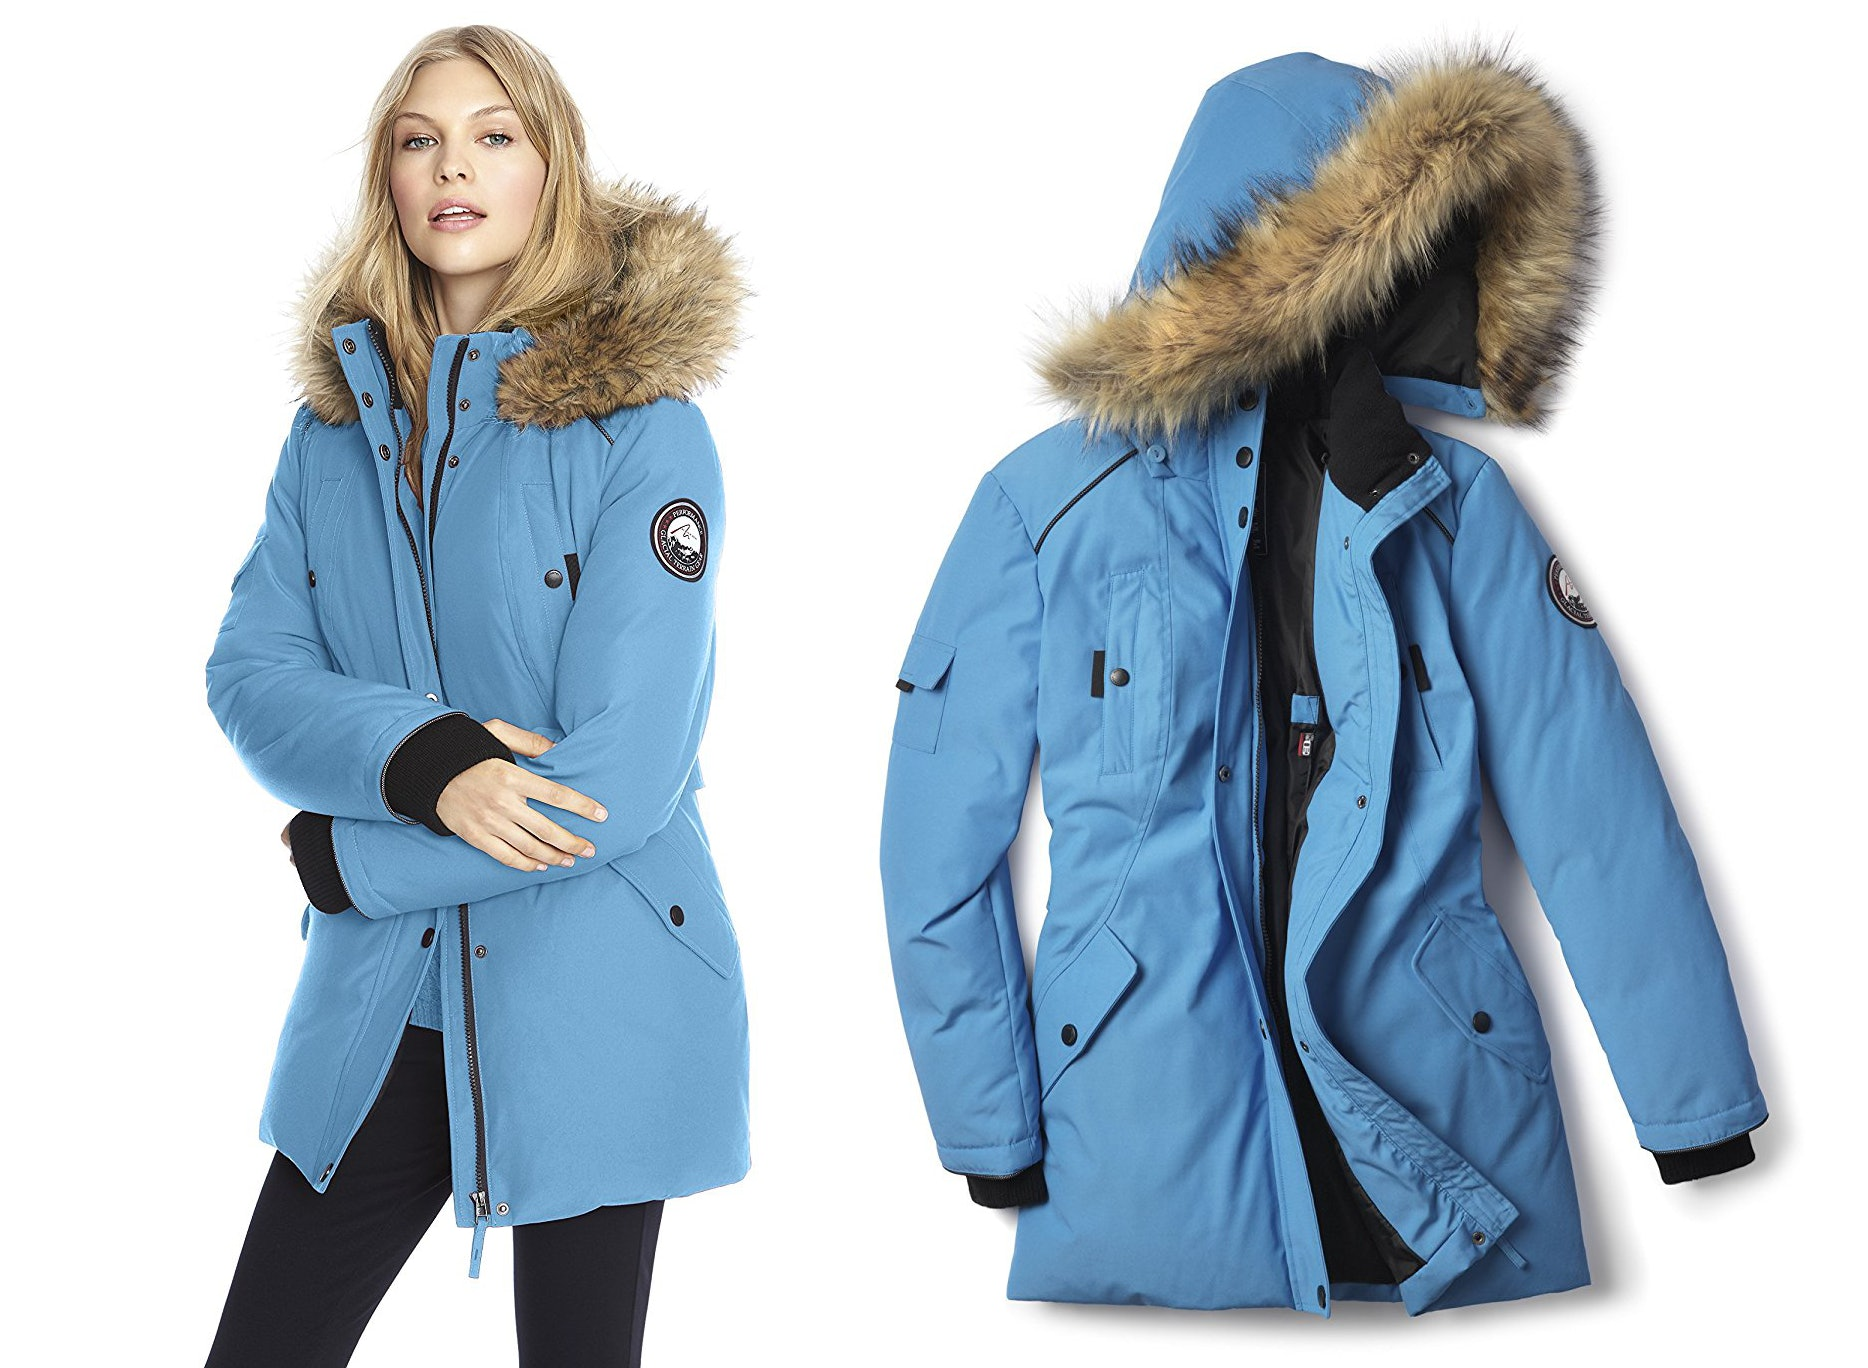 pictures MORE: 10 Stylish Winter Coats Under 100